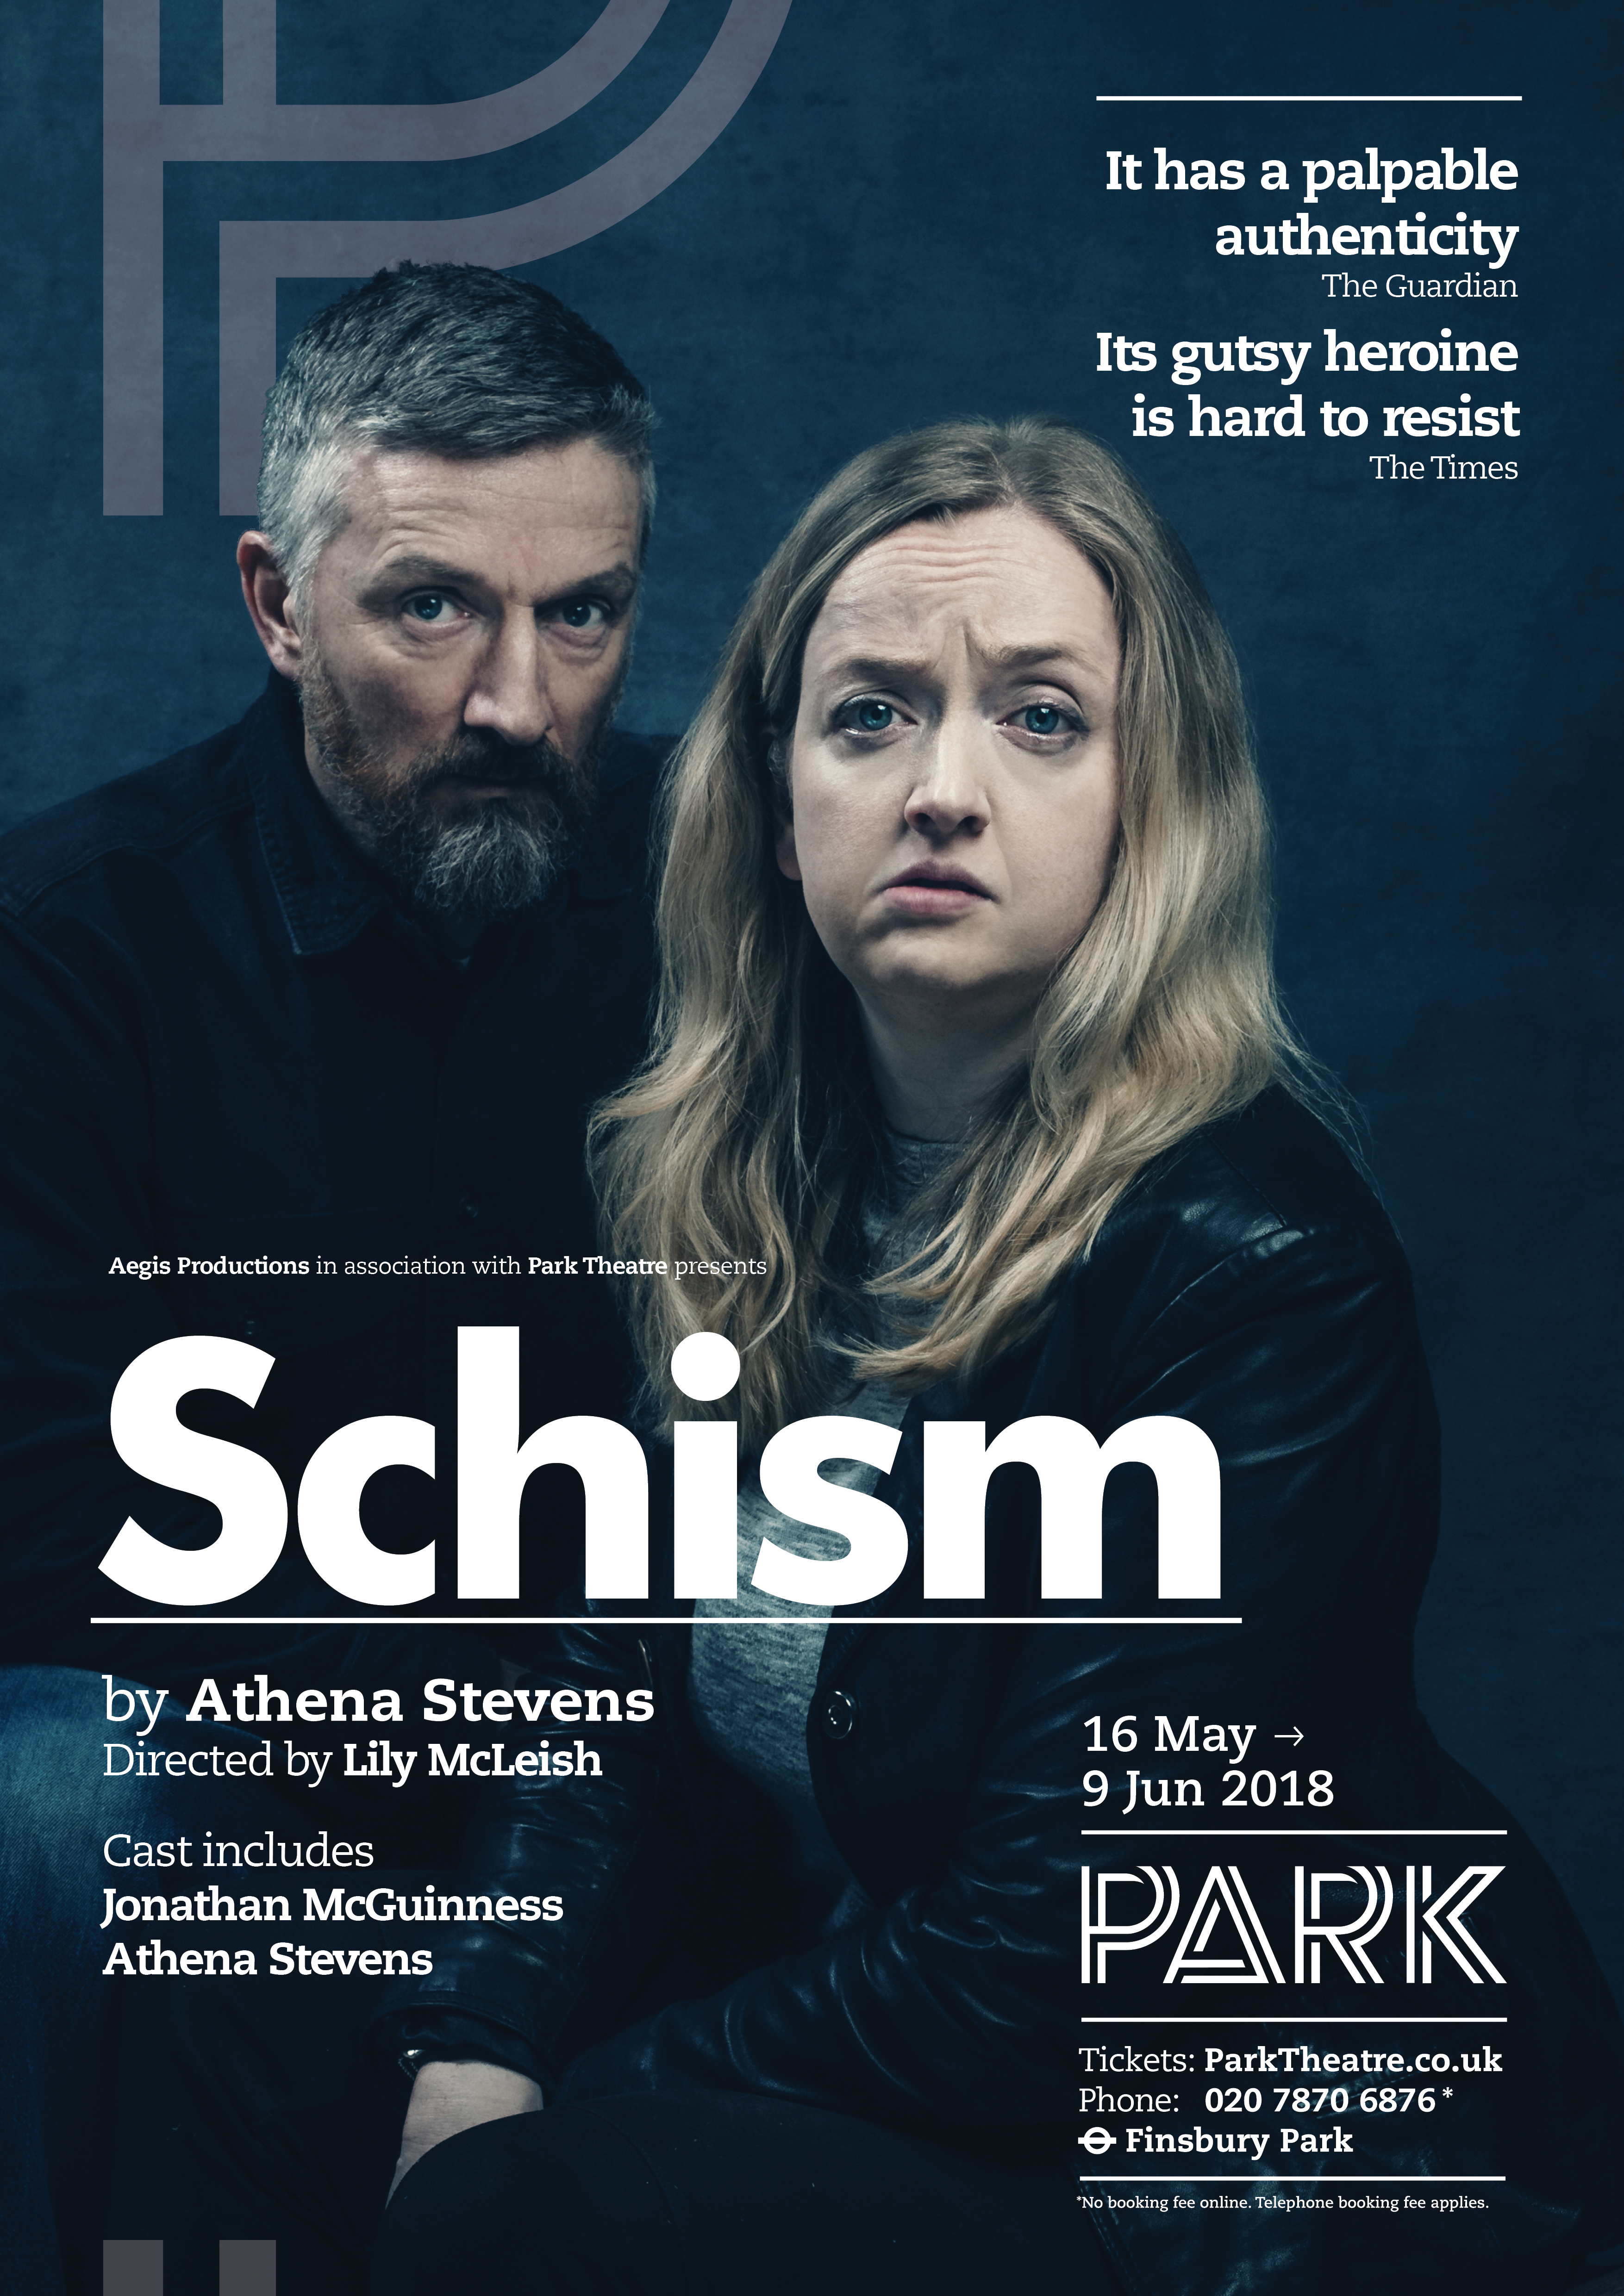 Schism for the Park Theatre